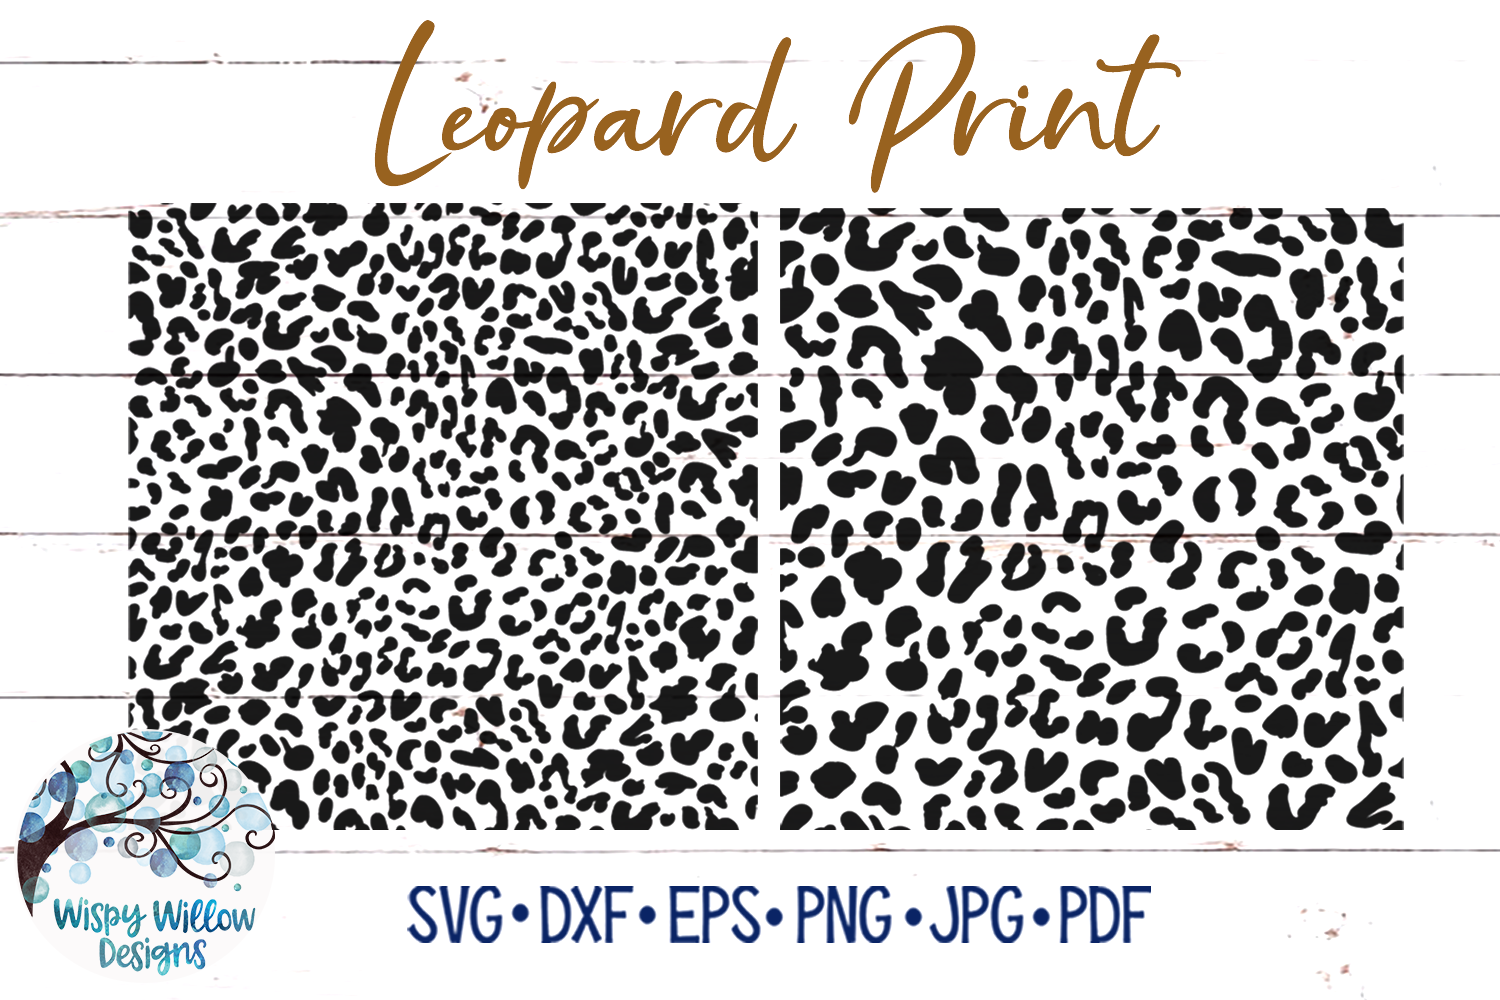 Download Free Leopard Print Bundle Graphic By Wispywillowdesigns Creative for Cricut Explore, Silhouette and other cutting machines.